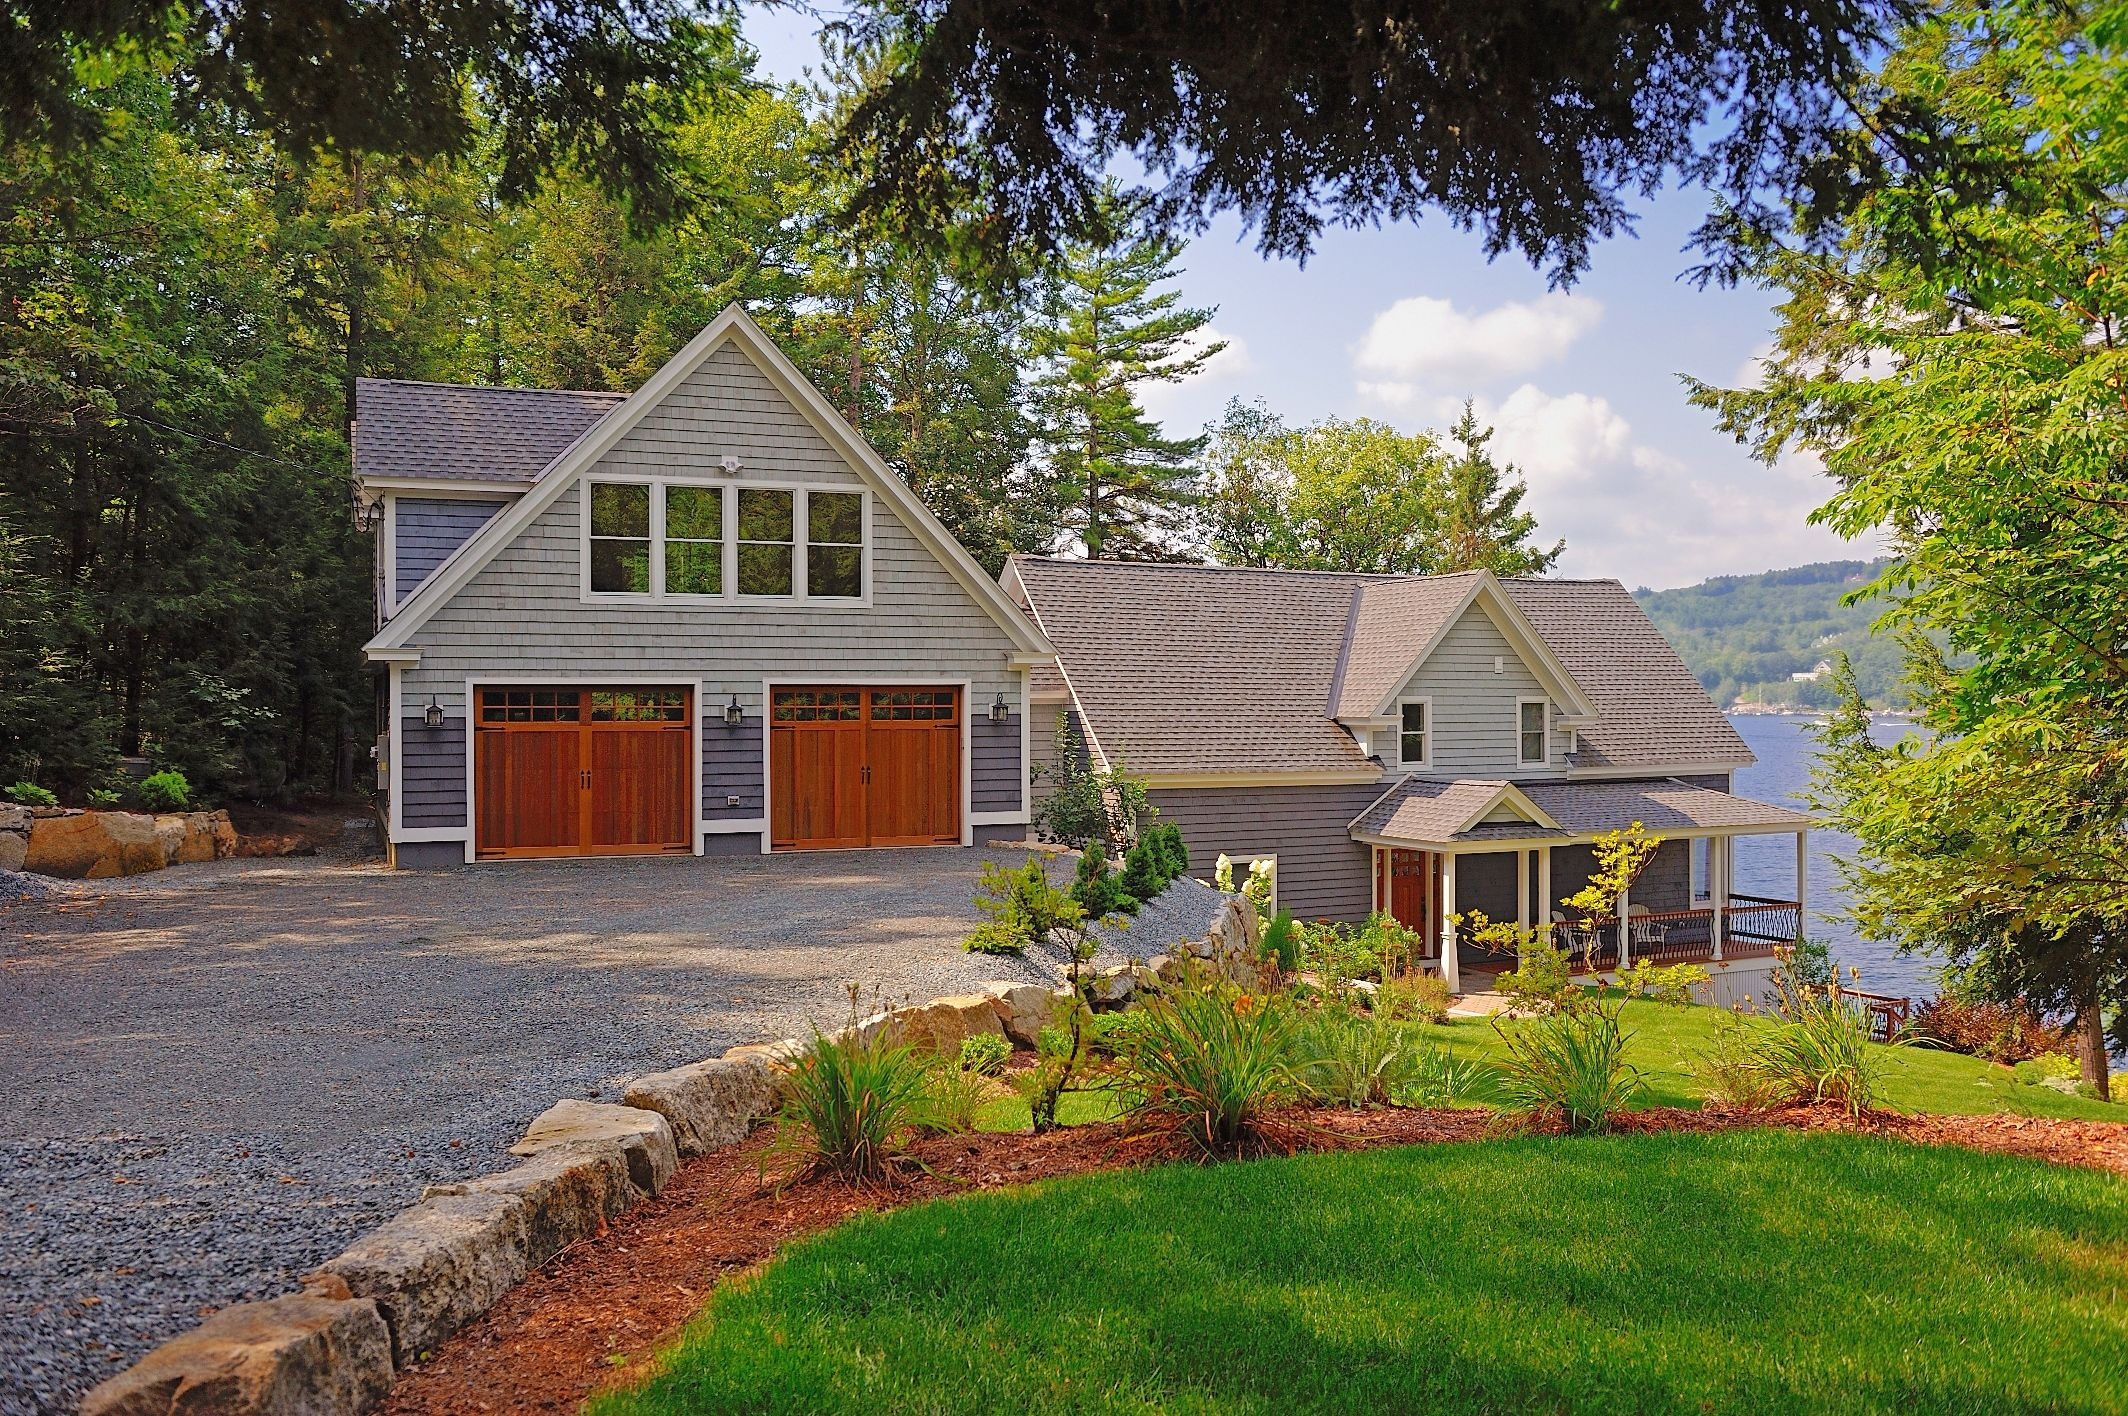 A Sense Of History Underlies C H I S Wood Garage Doors Shown Is Model 5400 With Optional Stockton Windows Wood Garage Doors Carriage House Garage Doors House